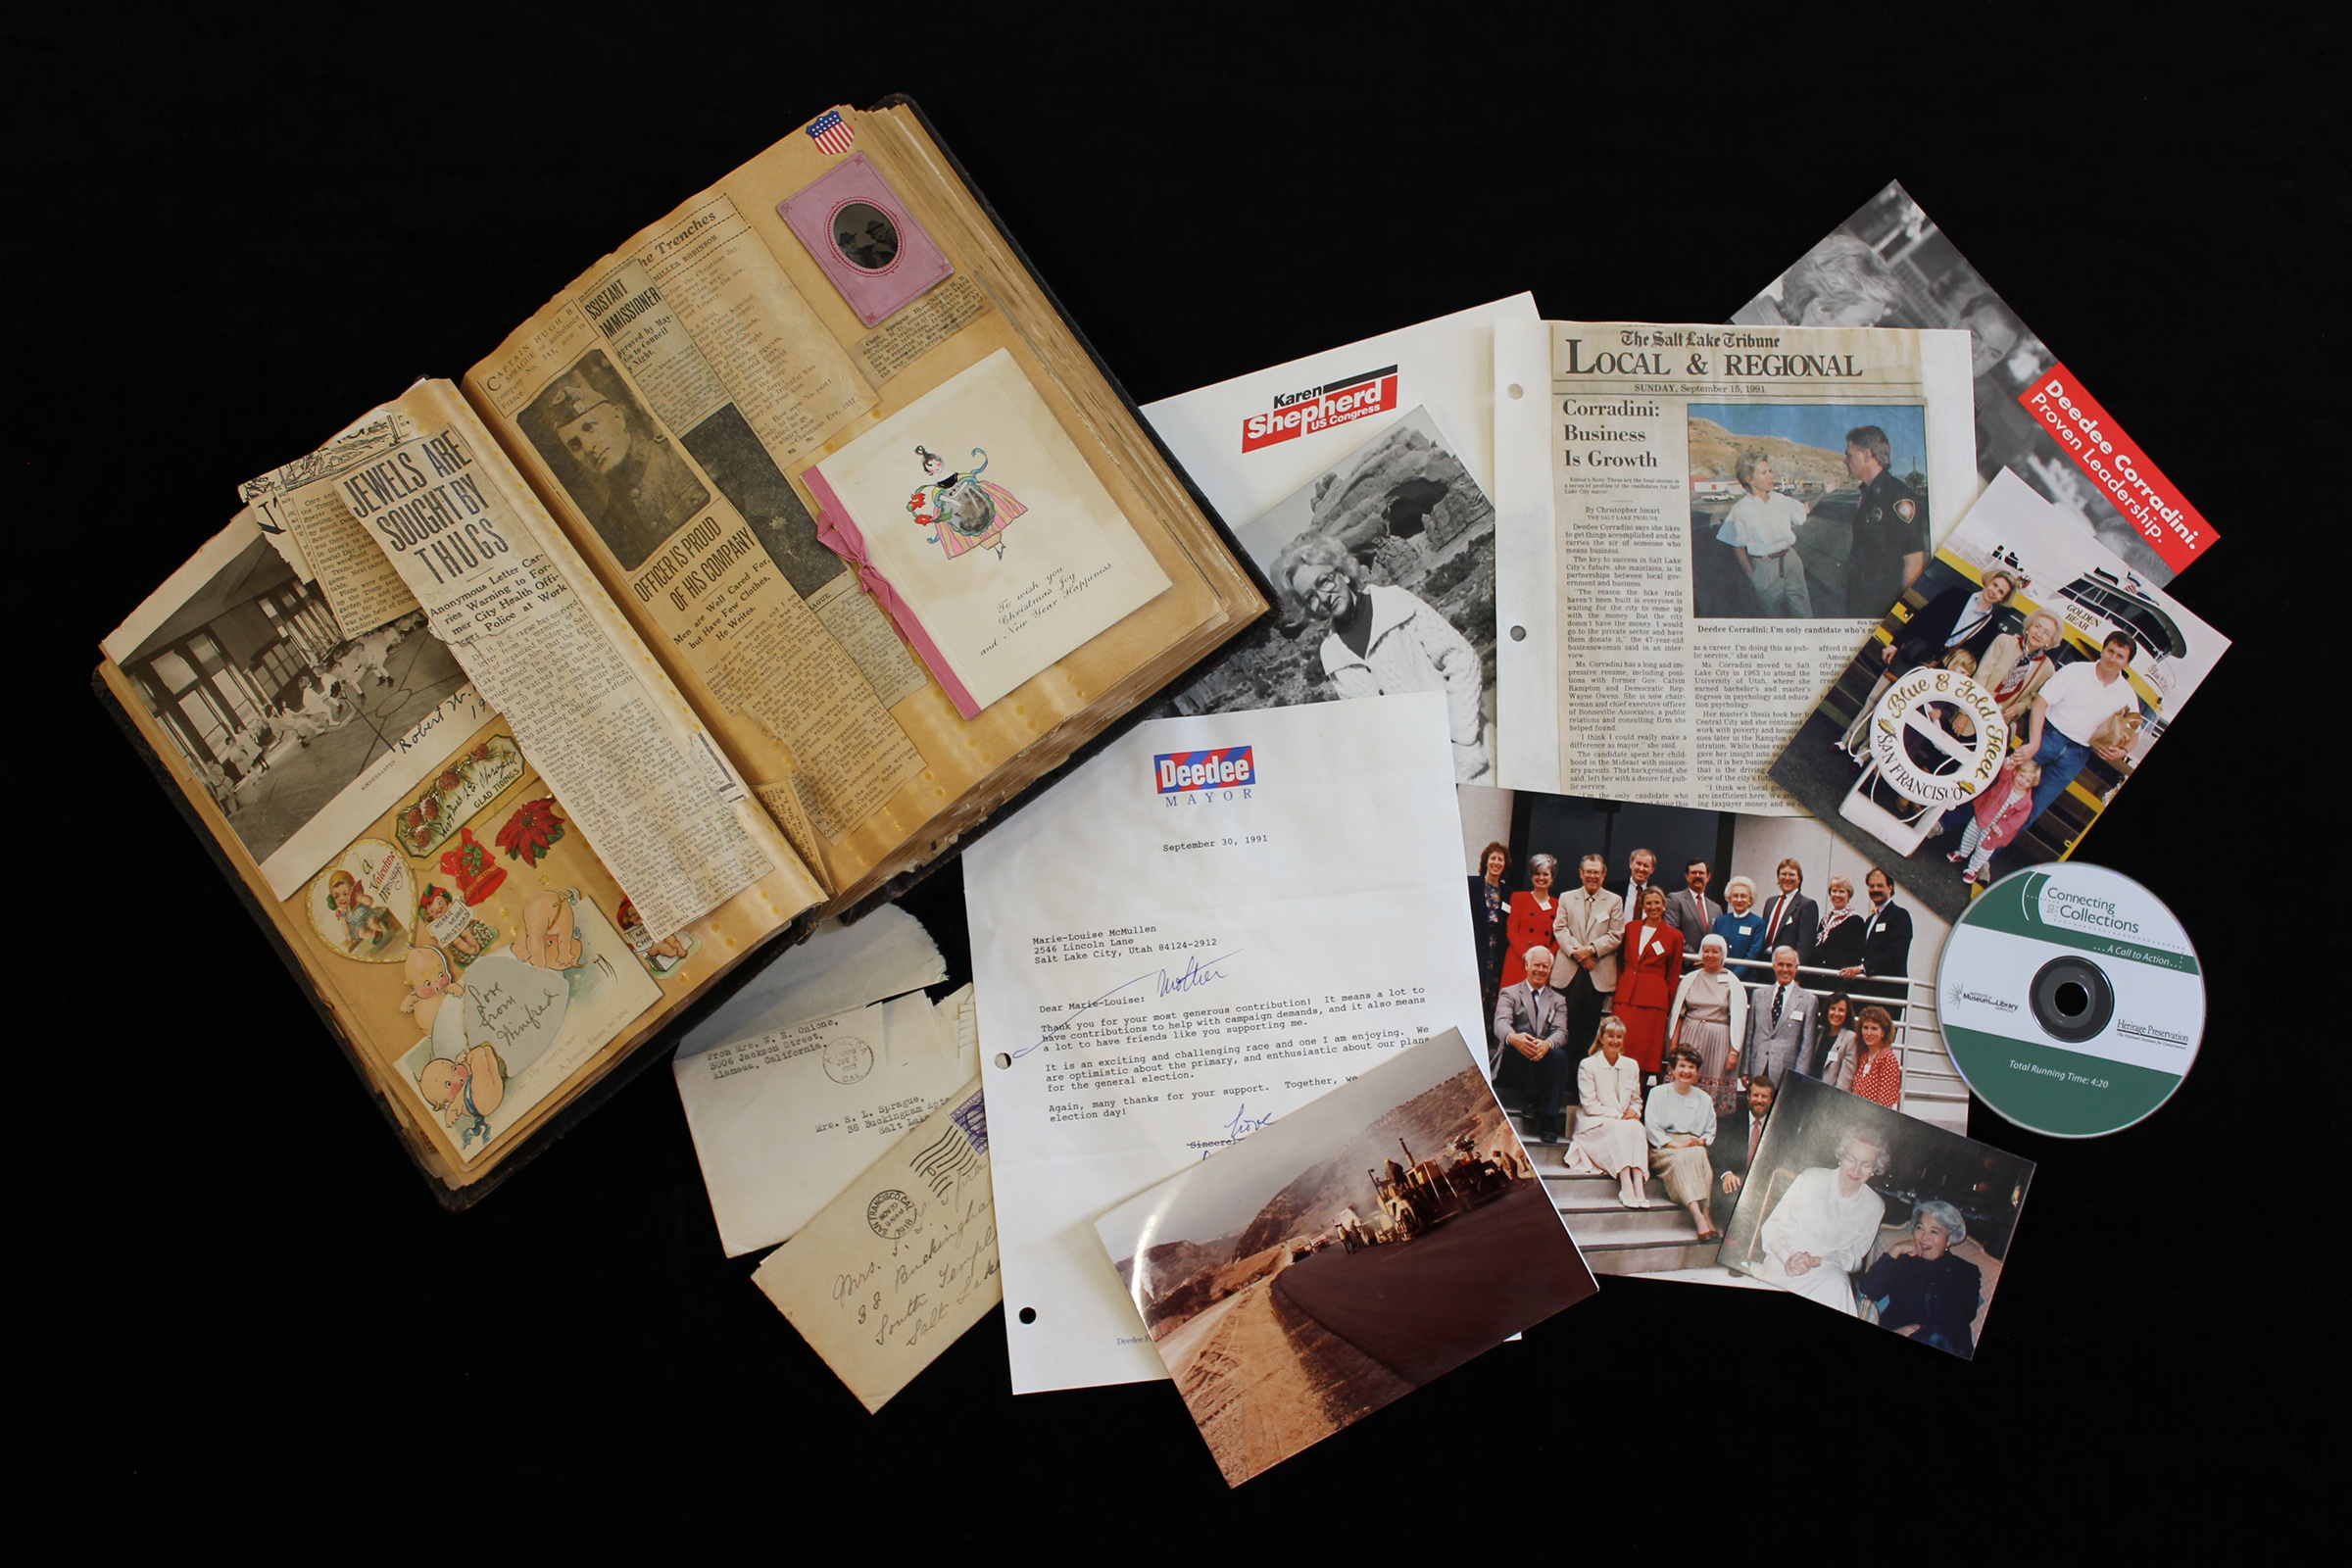 Items contained in the Aileen H. Clyde 20th Century Women's Legacy Archive representing numerous notable women from Utah and the region